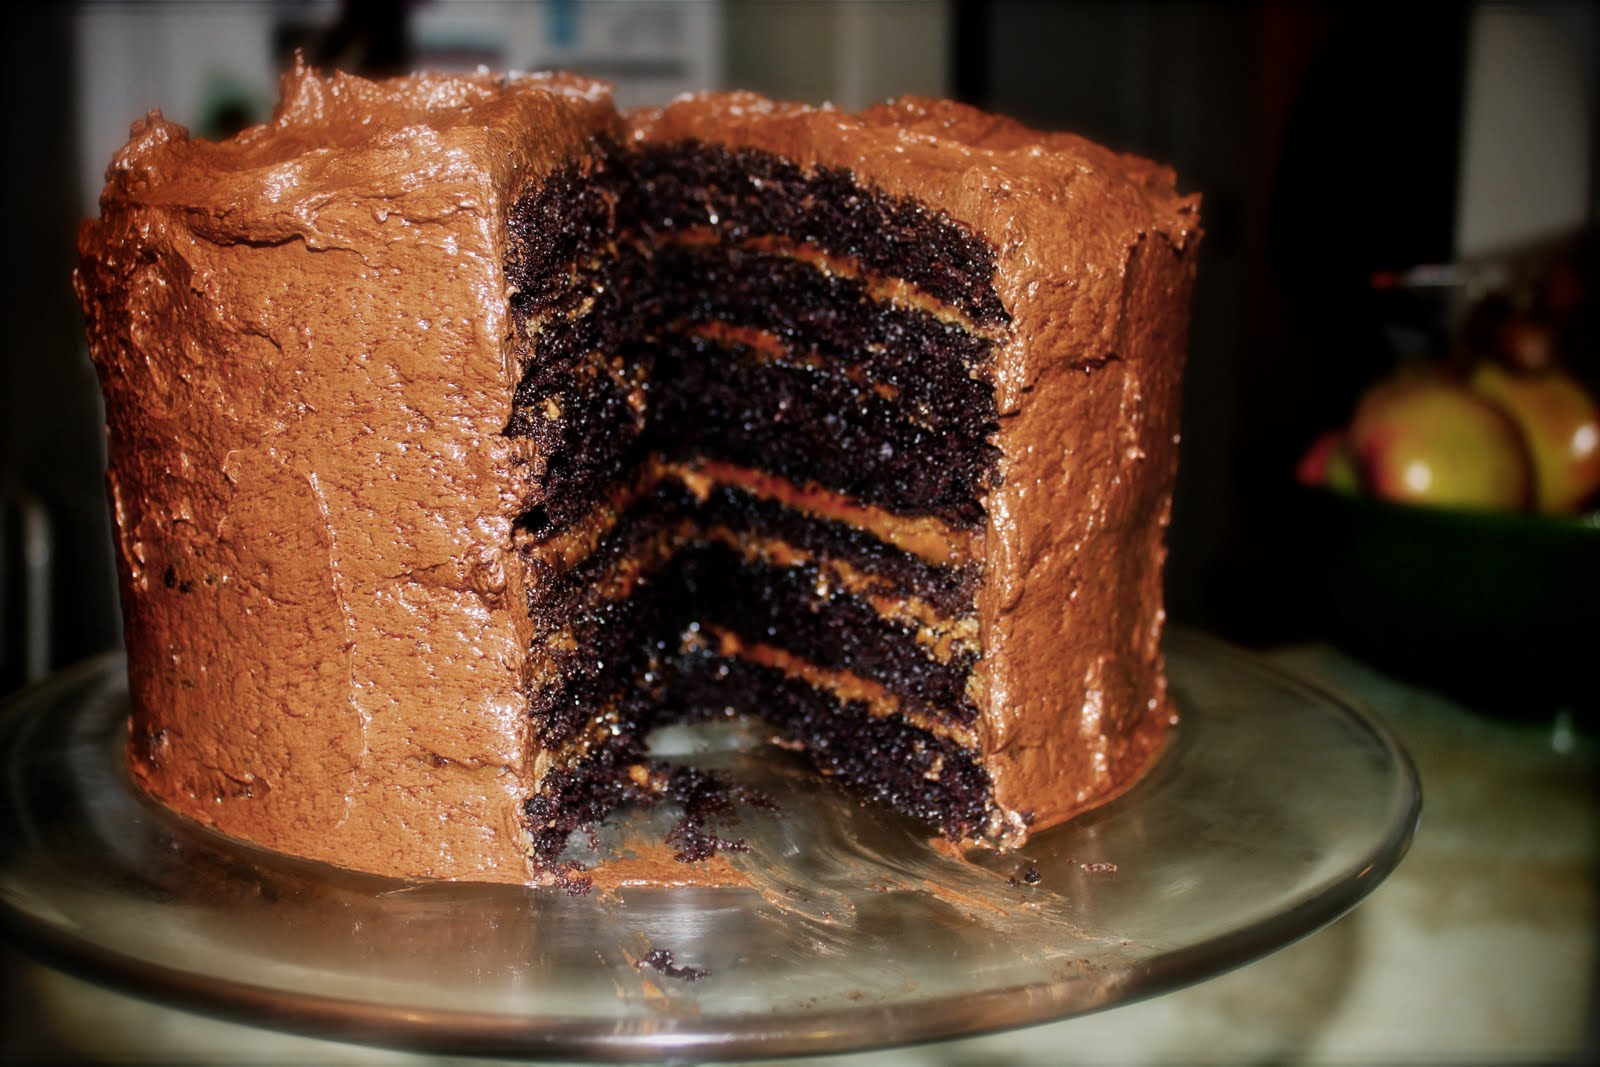 Robb and Jess: Salted Caramel Six-Layer Chocolate Cake